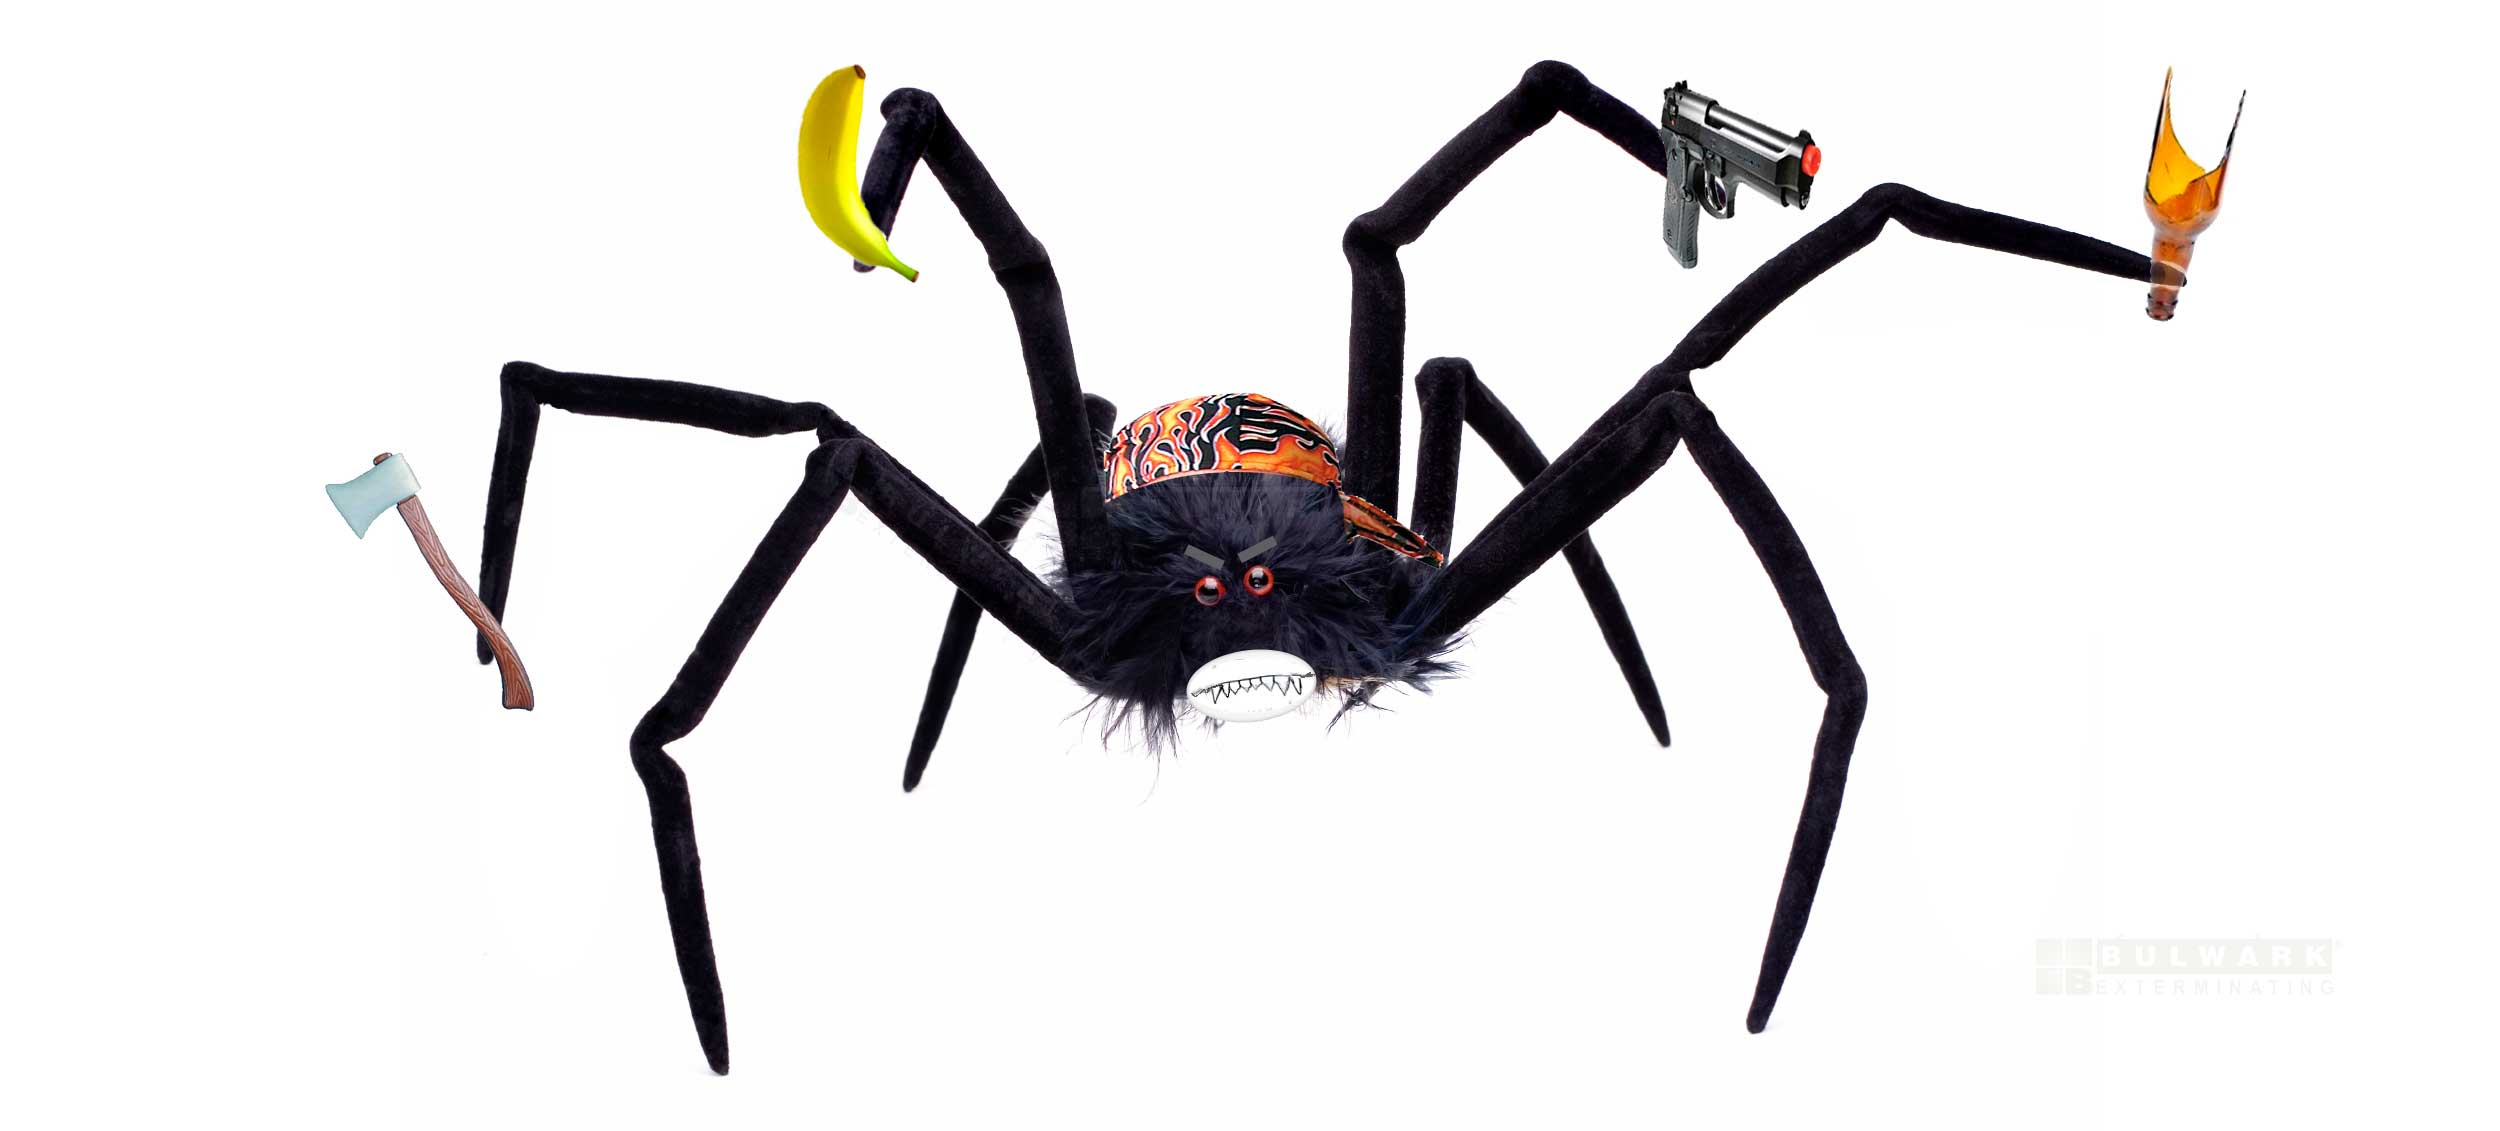 Fake_Spider_Intruder911